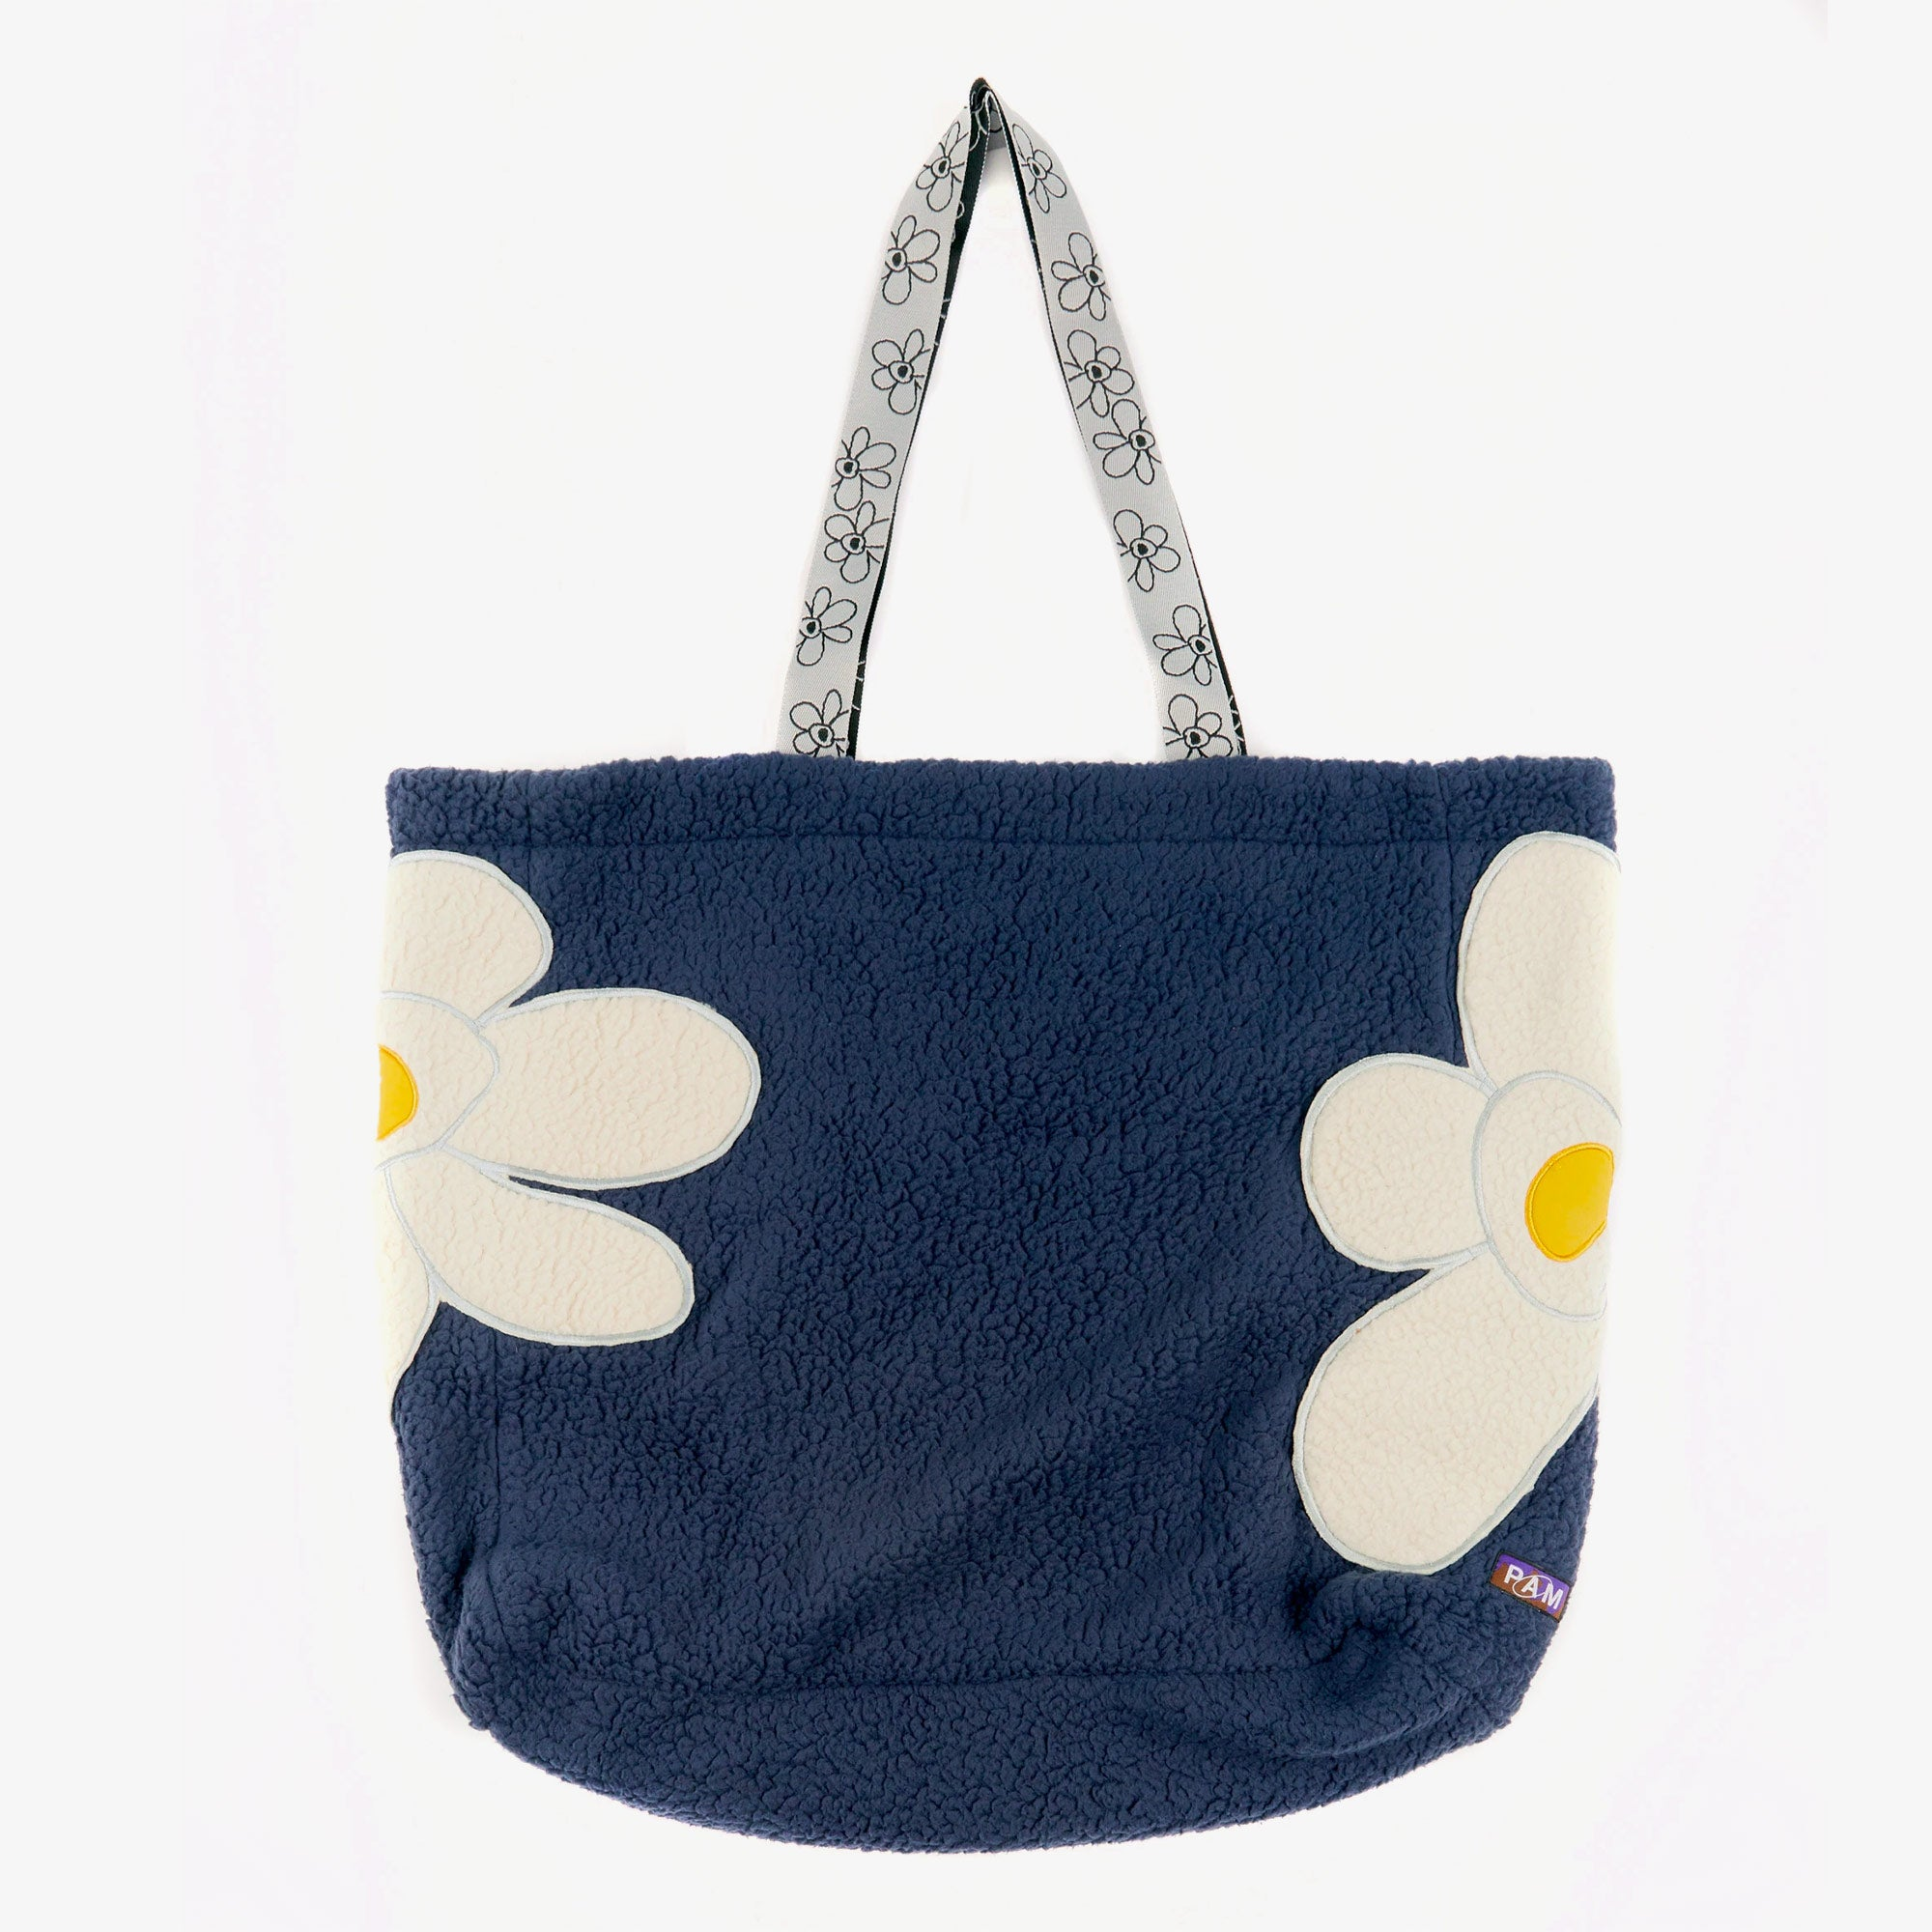 Perks and Mini (P.A.M.) Popping Gestures Recycled Shearling Tote Bag - Navy Fog 1